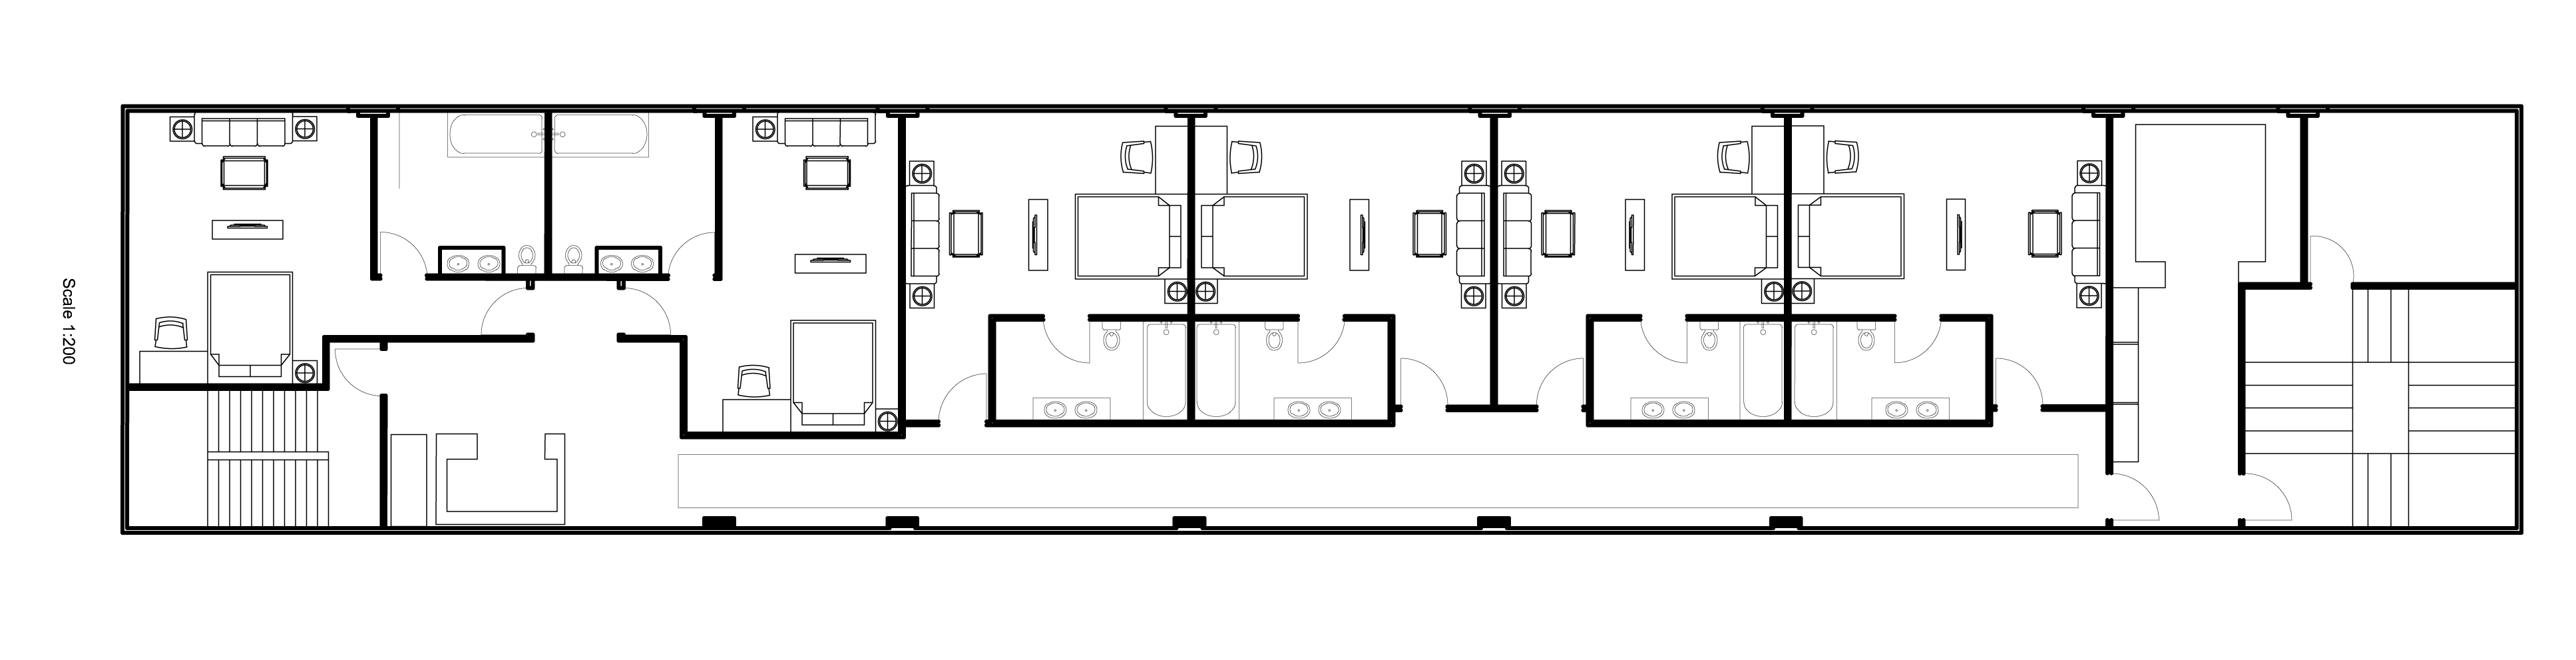 file floor plan of hotel rooms jpg wikimedia commons